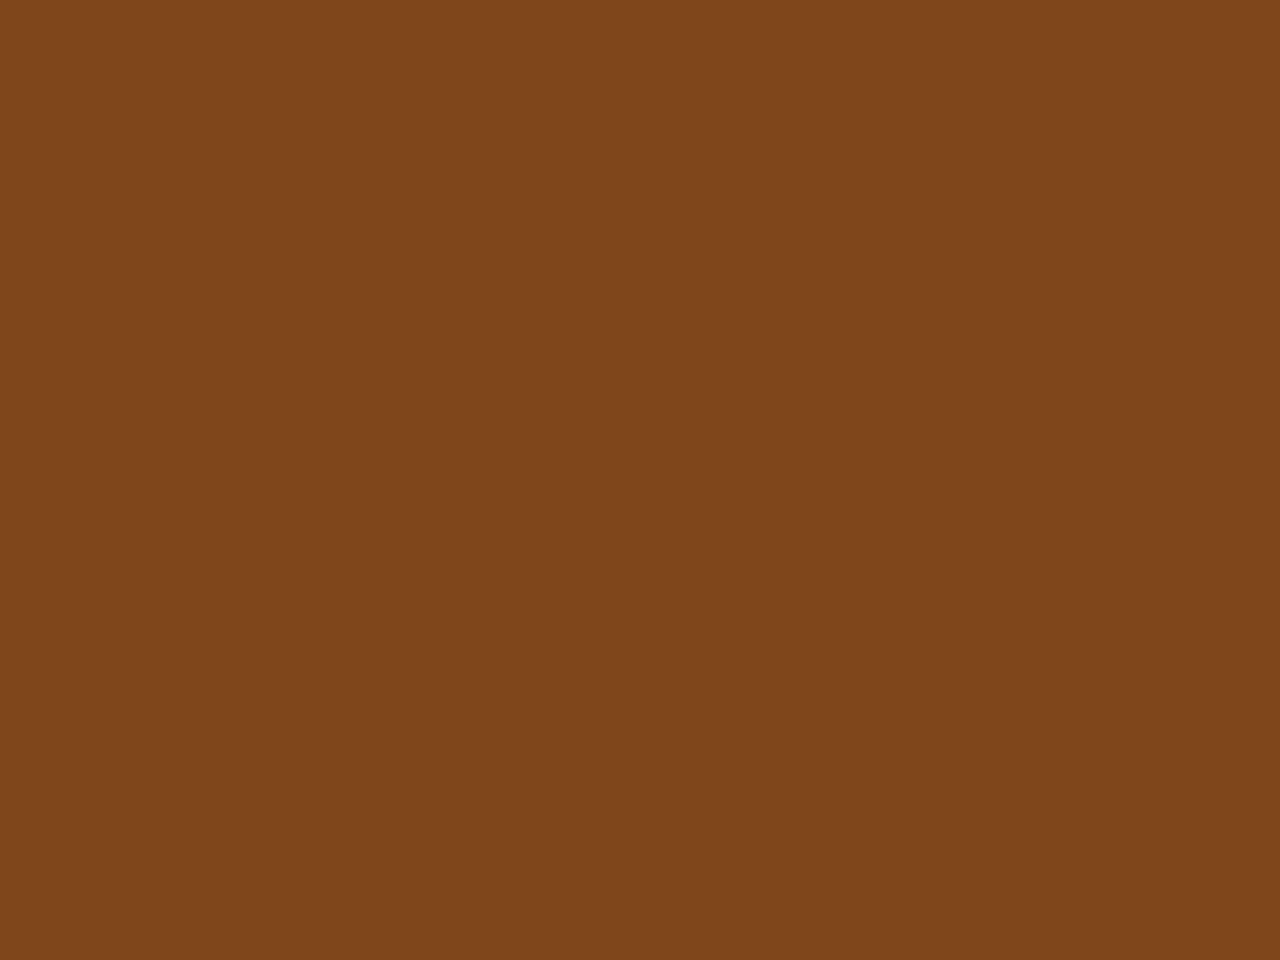 1280x960 Russet Solid Color Background